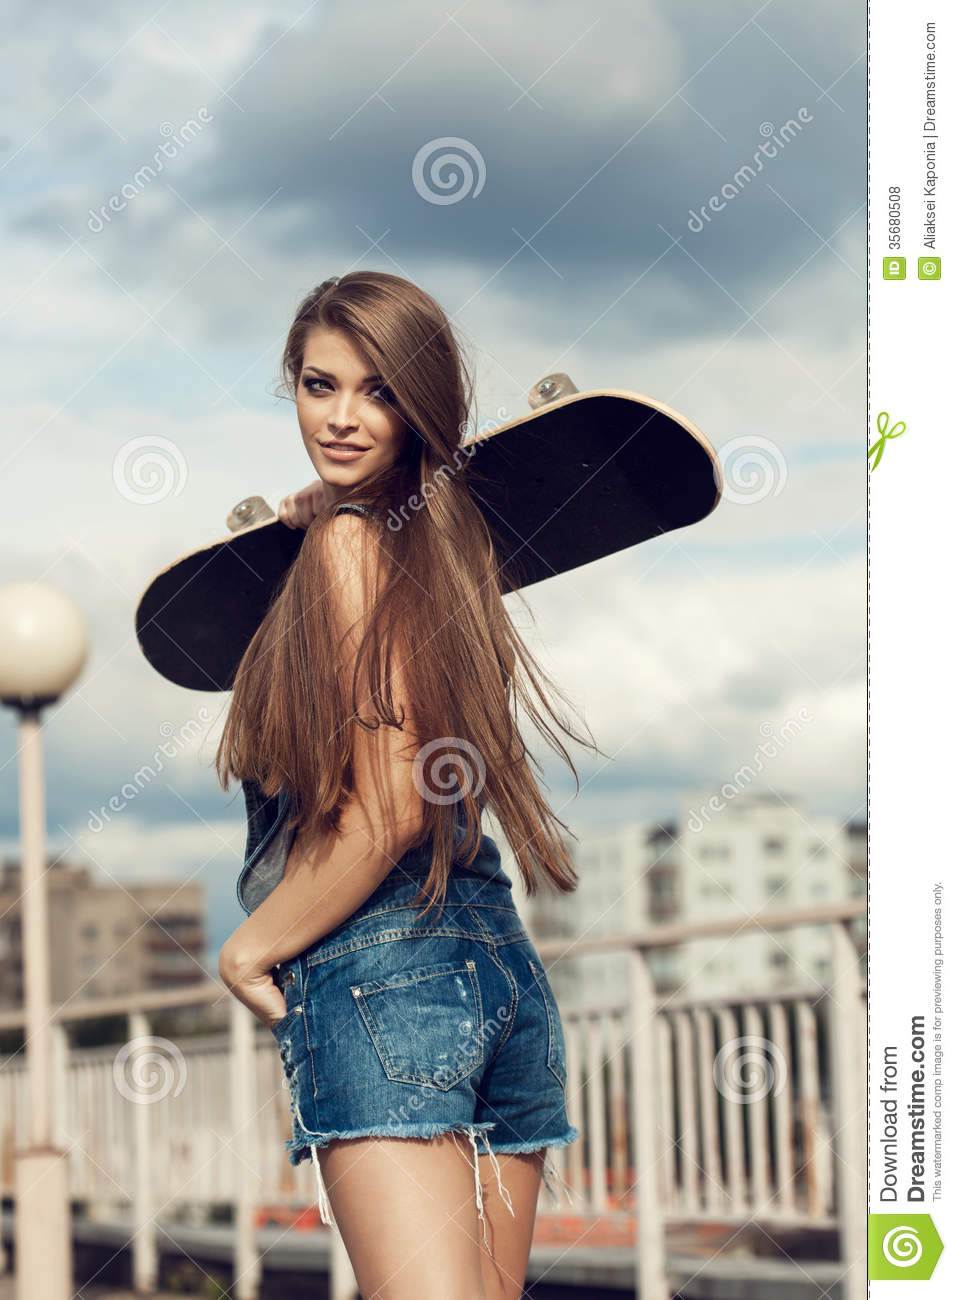 happy skater girl stock photo image of leisure people